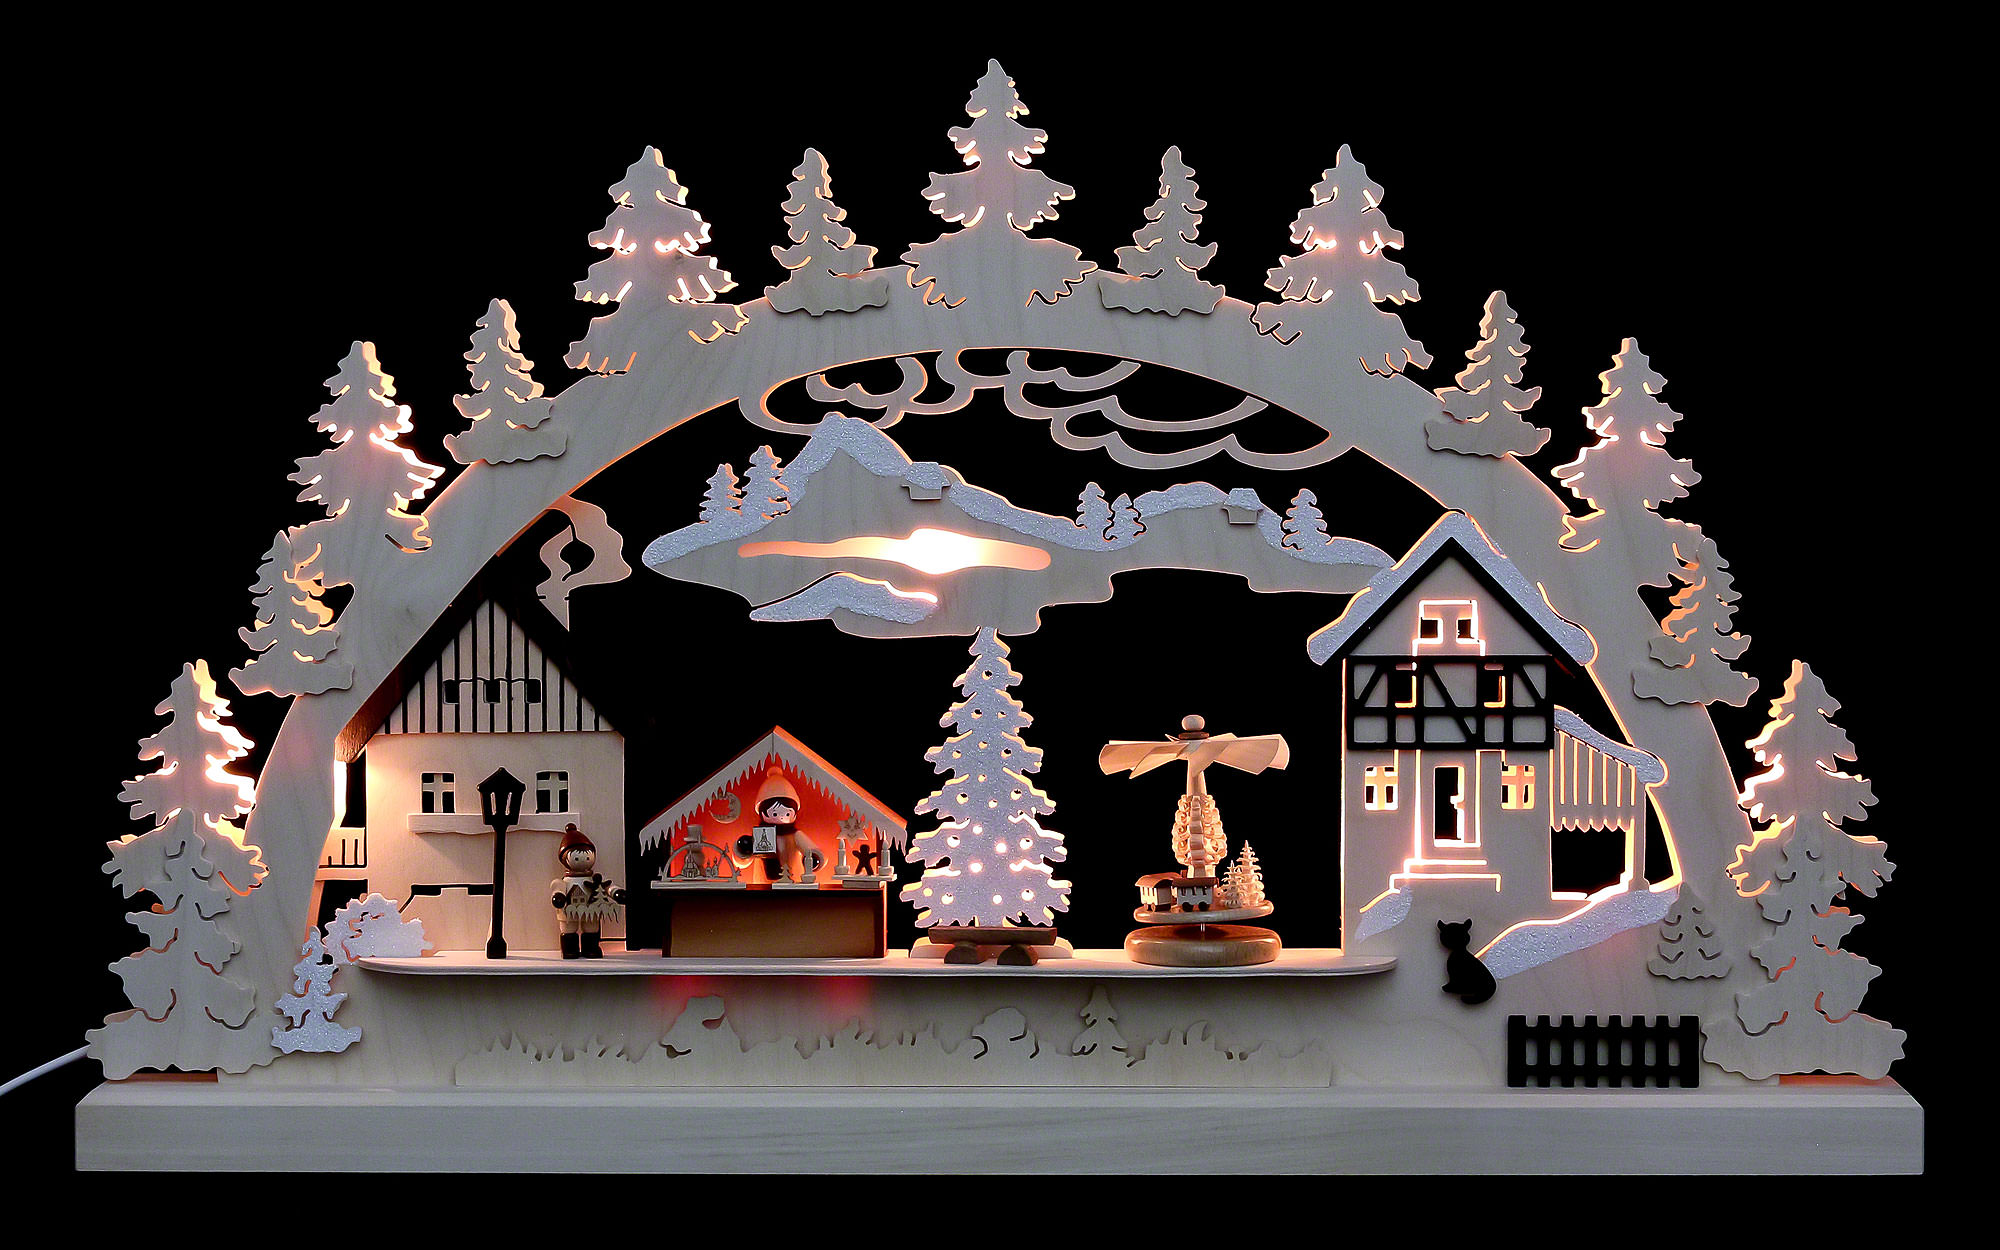 Candle arch christmas village 62x37x5 5cm 24x14x2in by for Arch candle christmas decoration